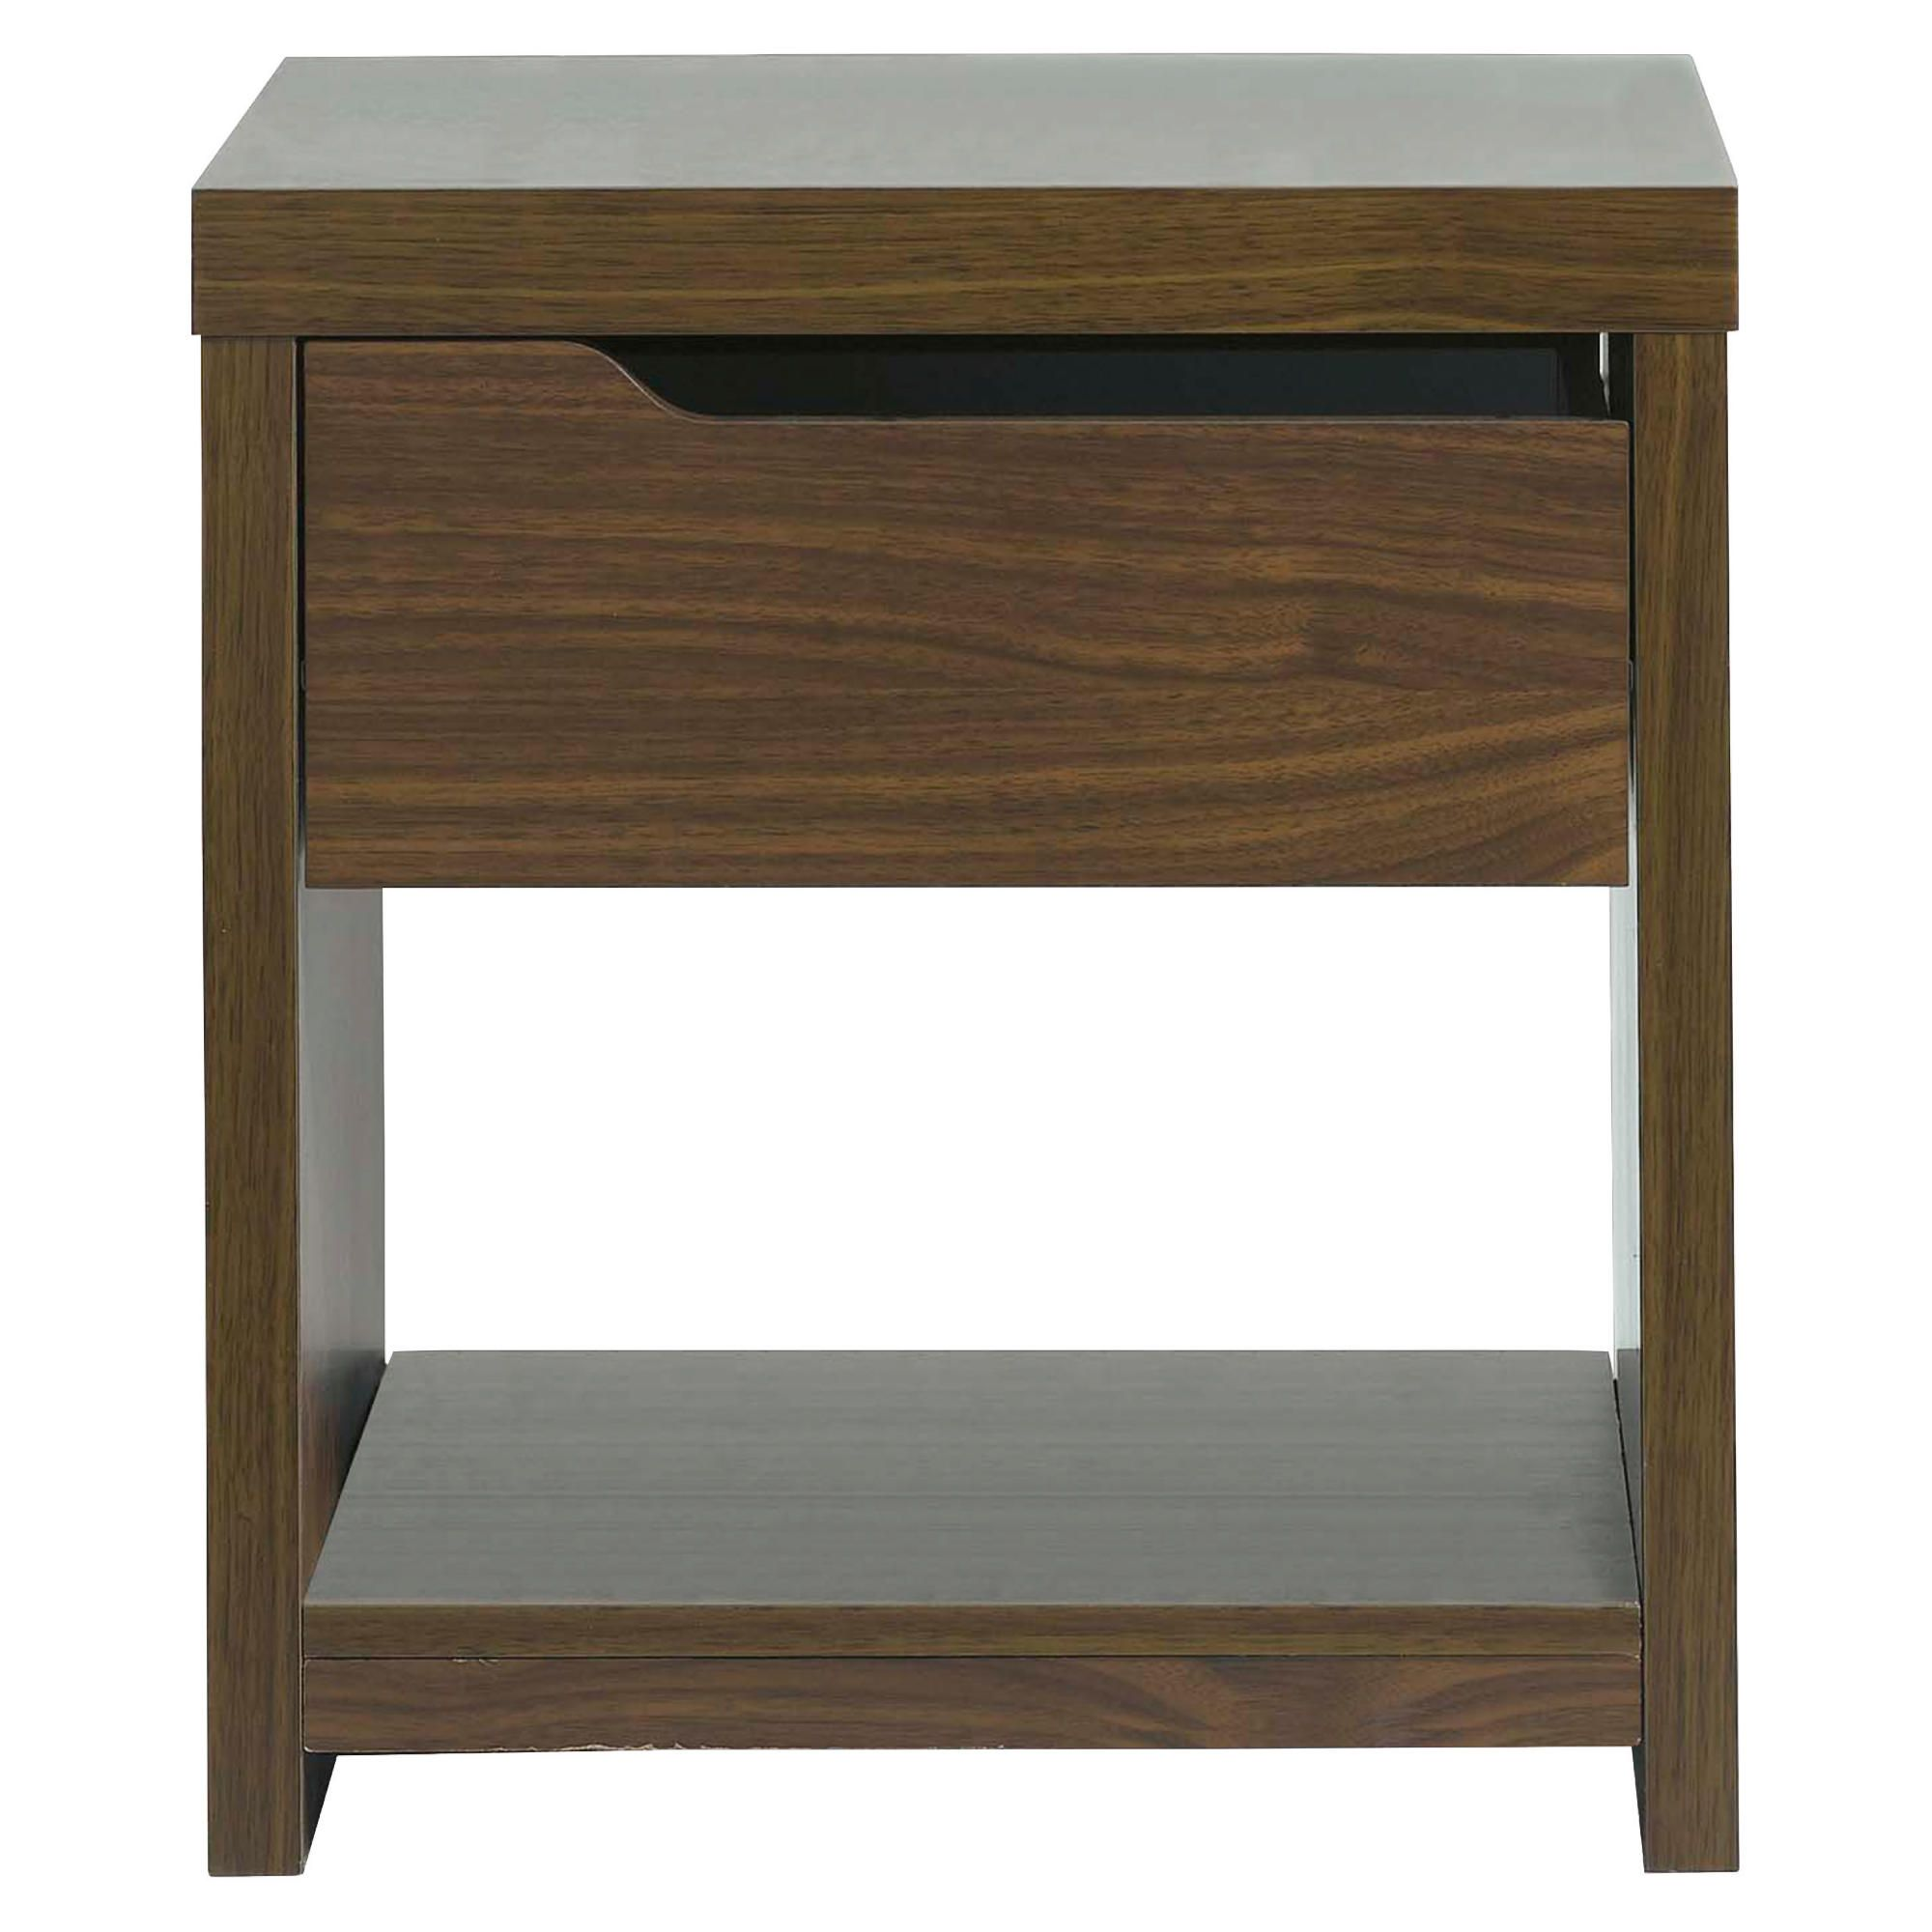 Tesco Seattle Side Table Walnut Effect